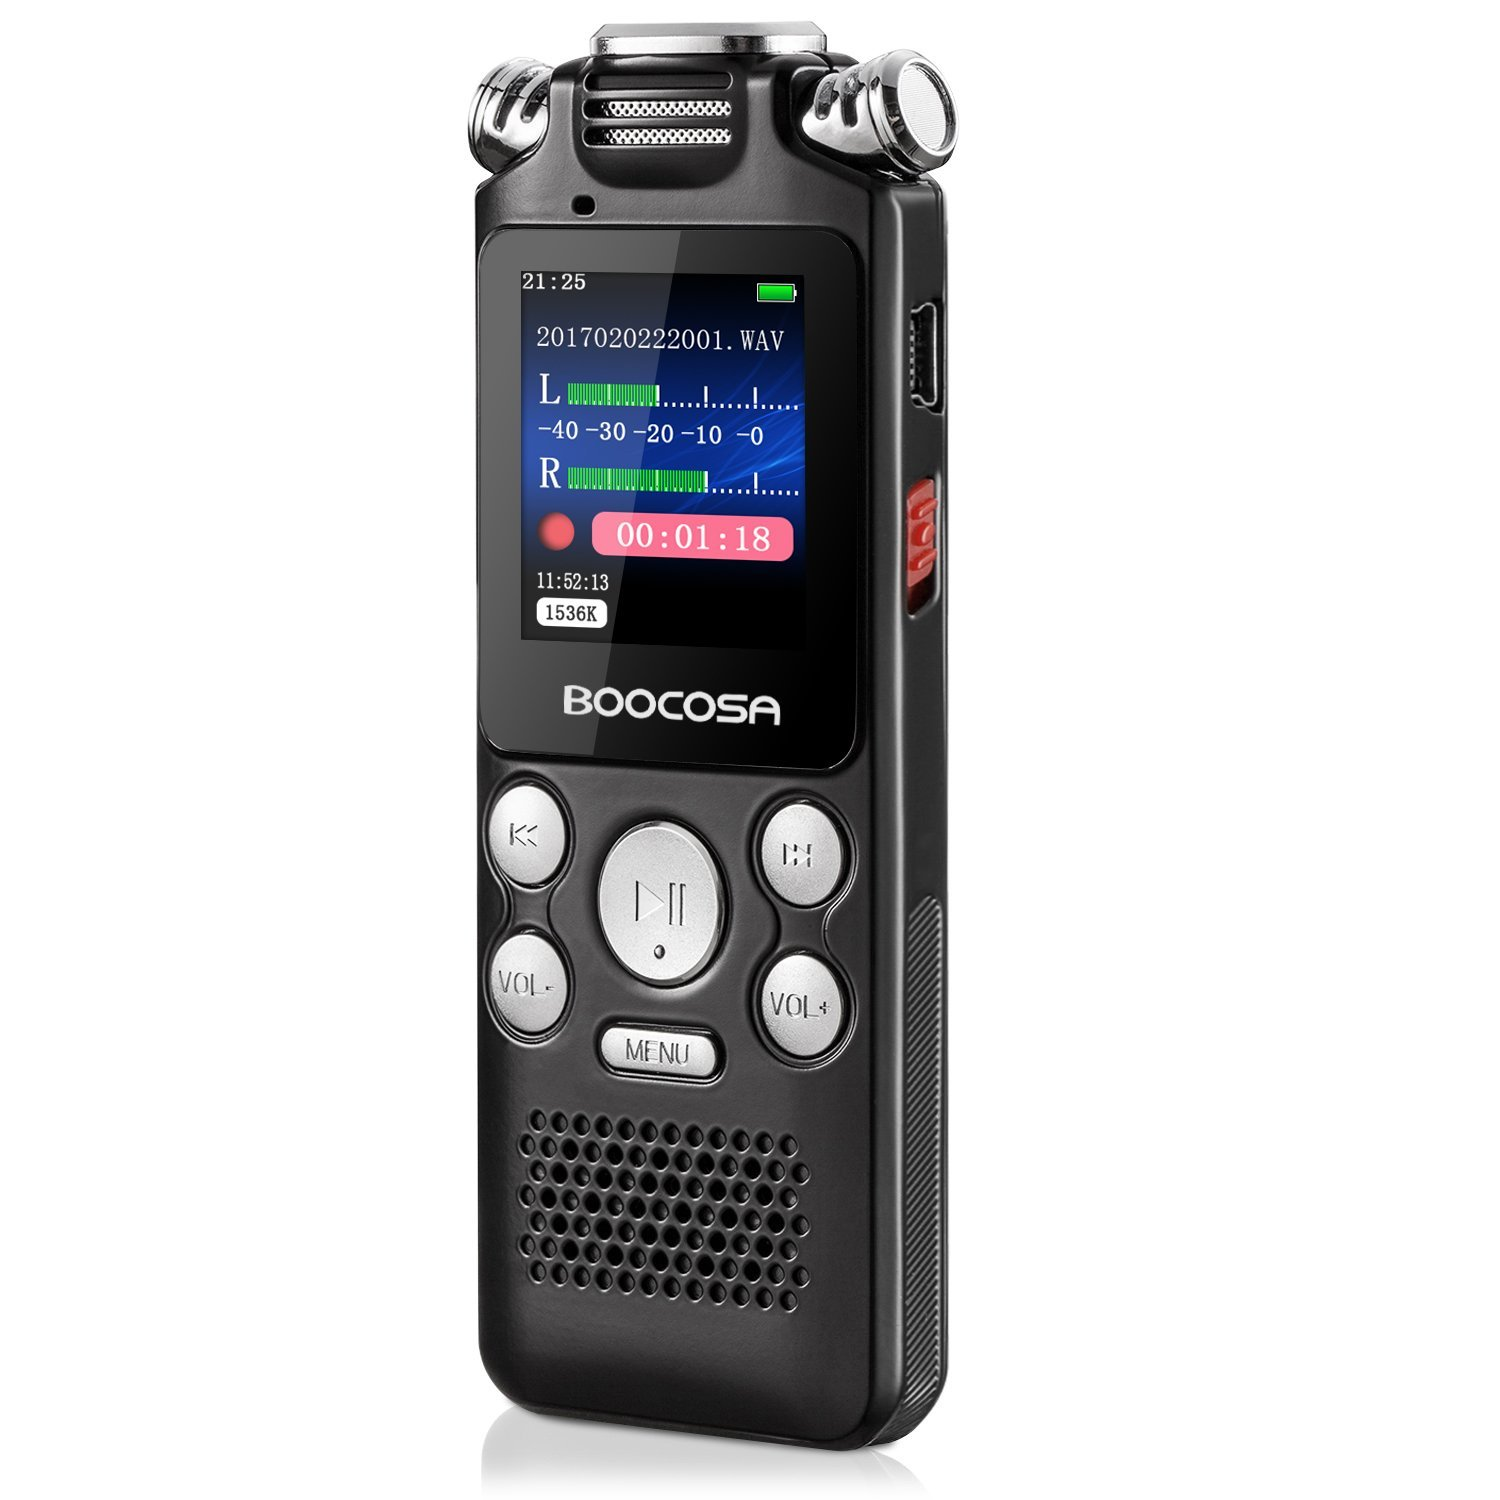 Voice Recorder - 8GB Audio Sound Recorder - Portable Rechargeable Dictaphone Recorder with Playback Noise Cancellation, A-B Repeat, Sleep Timer, MP3 Player (black7)